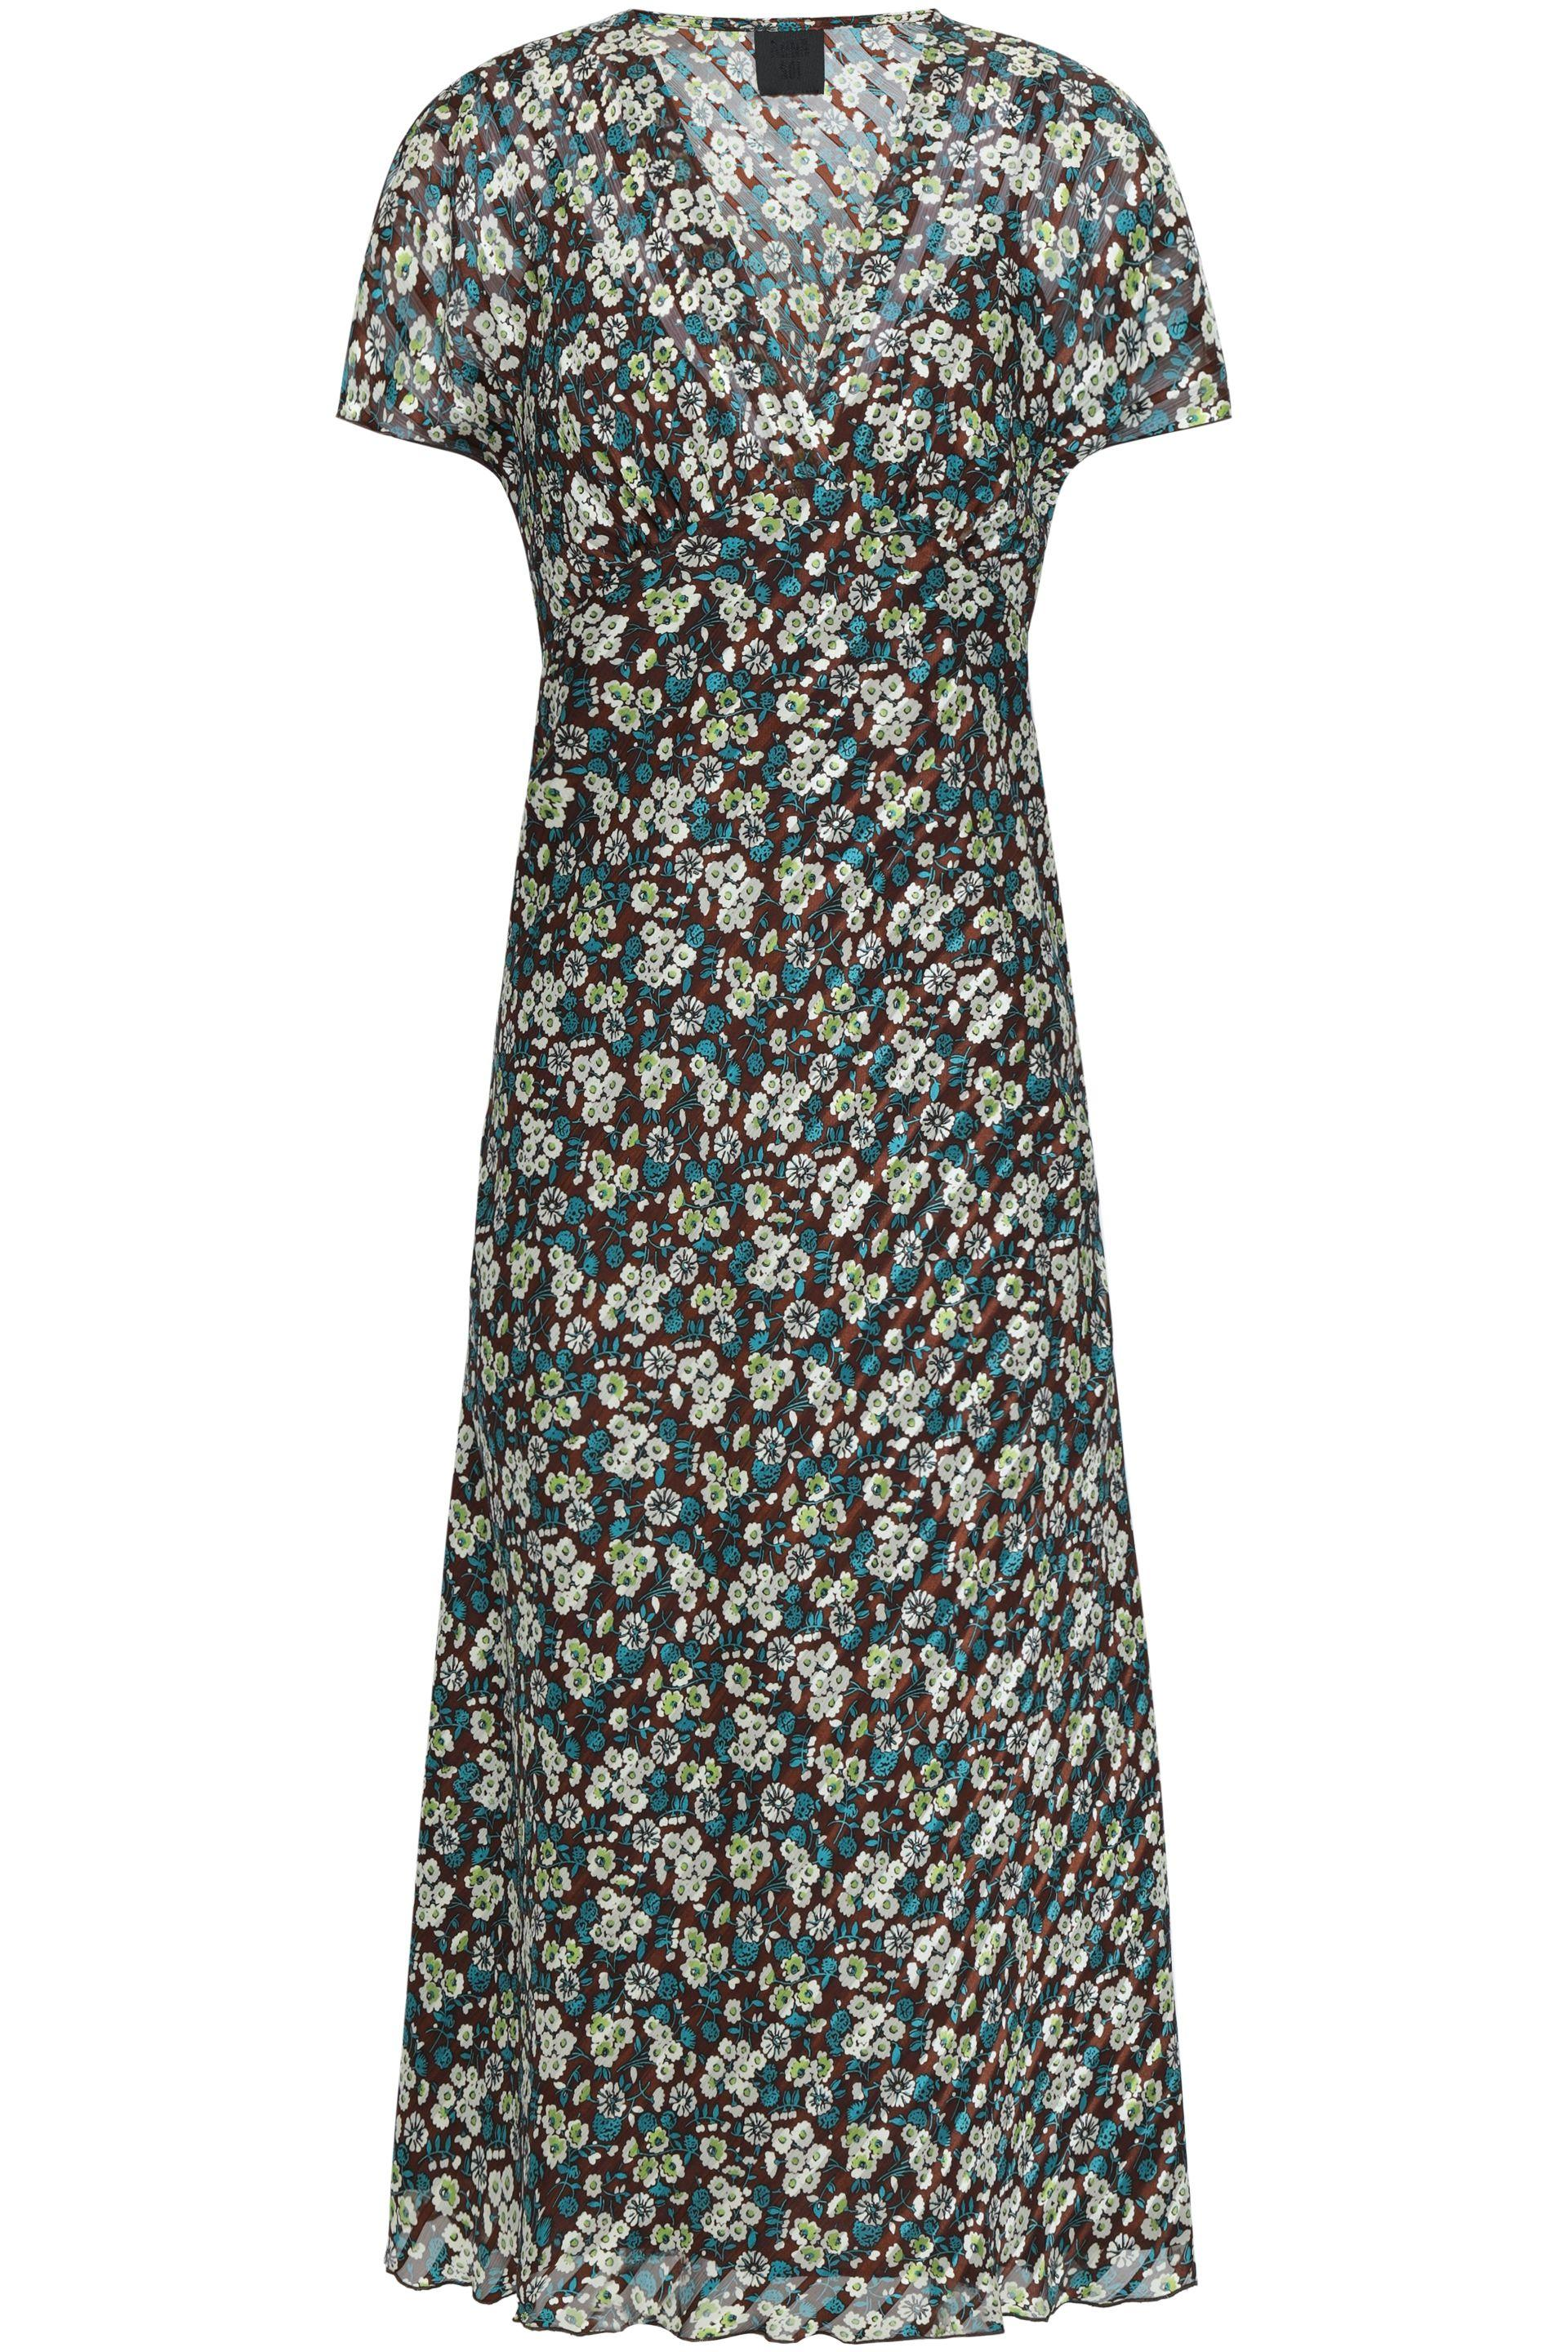 cd1334bca4be Lyst - Anna Sui Woman Floral-print Silk-georgette Midi Dress ...